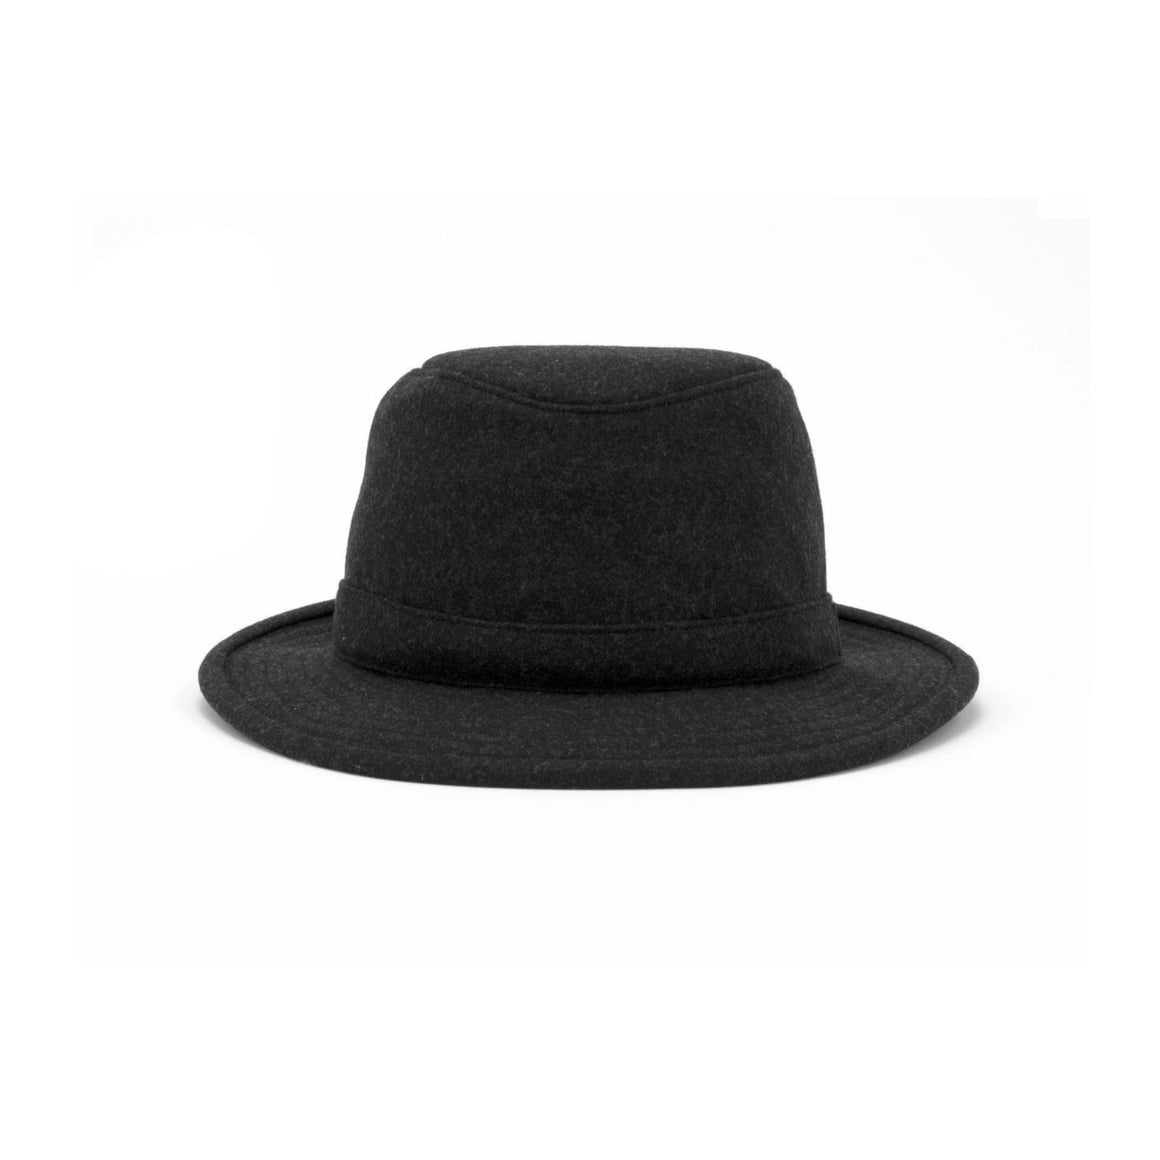 Tilley Wool Hat - Unisex